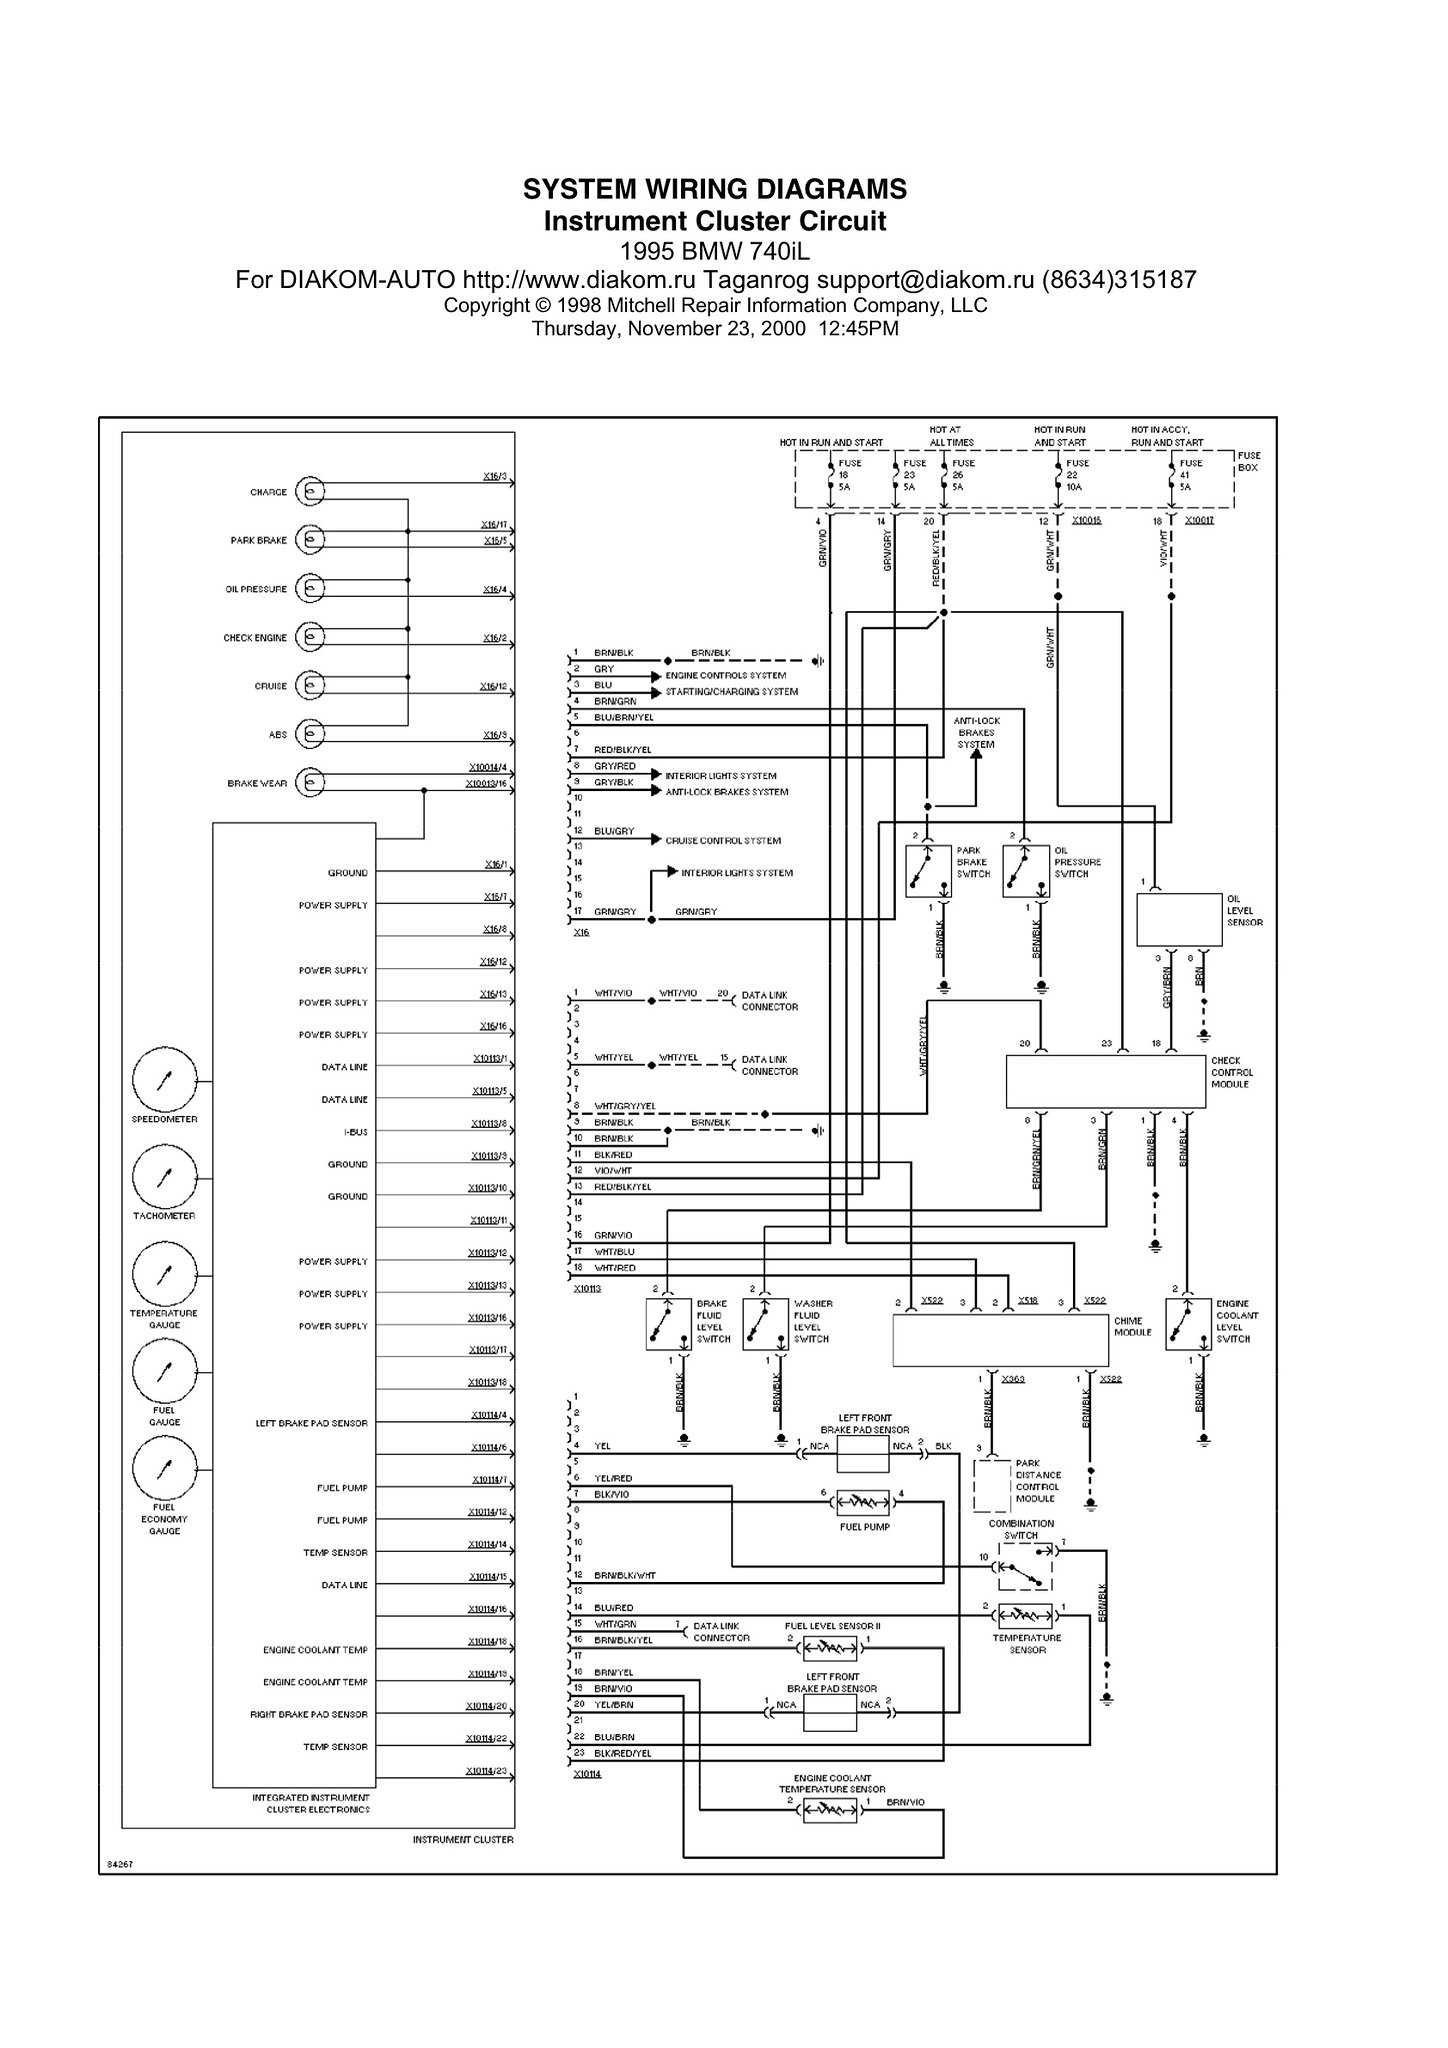 7703585142_dbc4ceb414_k bmw e39 wiring diagrams 1998 740i heated seat wiring diagram 1998 BMW Z3 Wiring Diagrams at soozxer.org